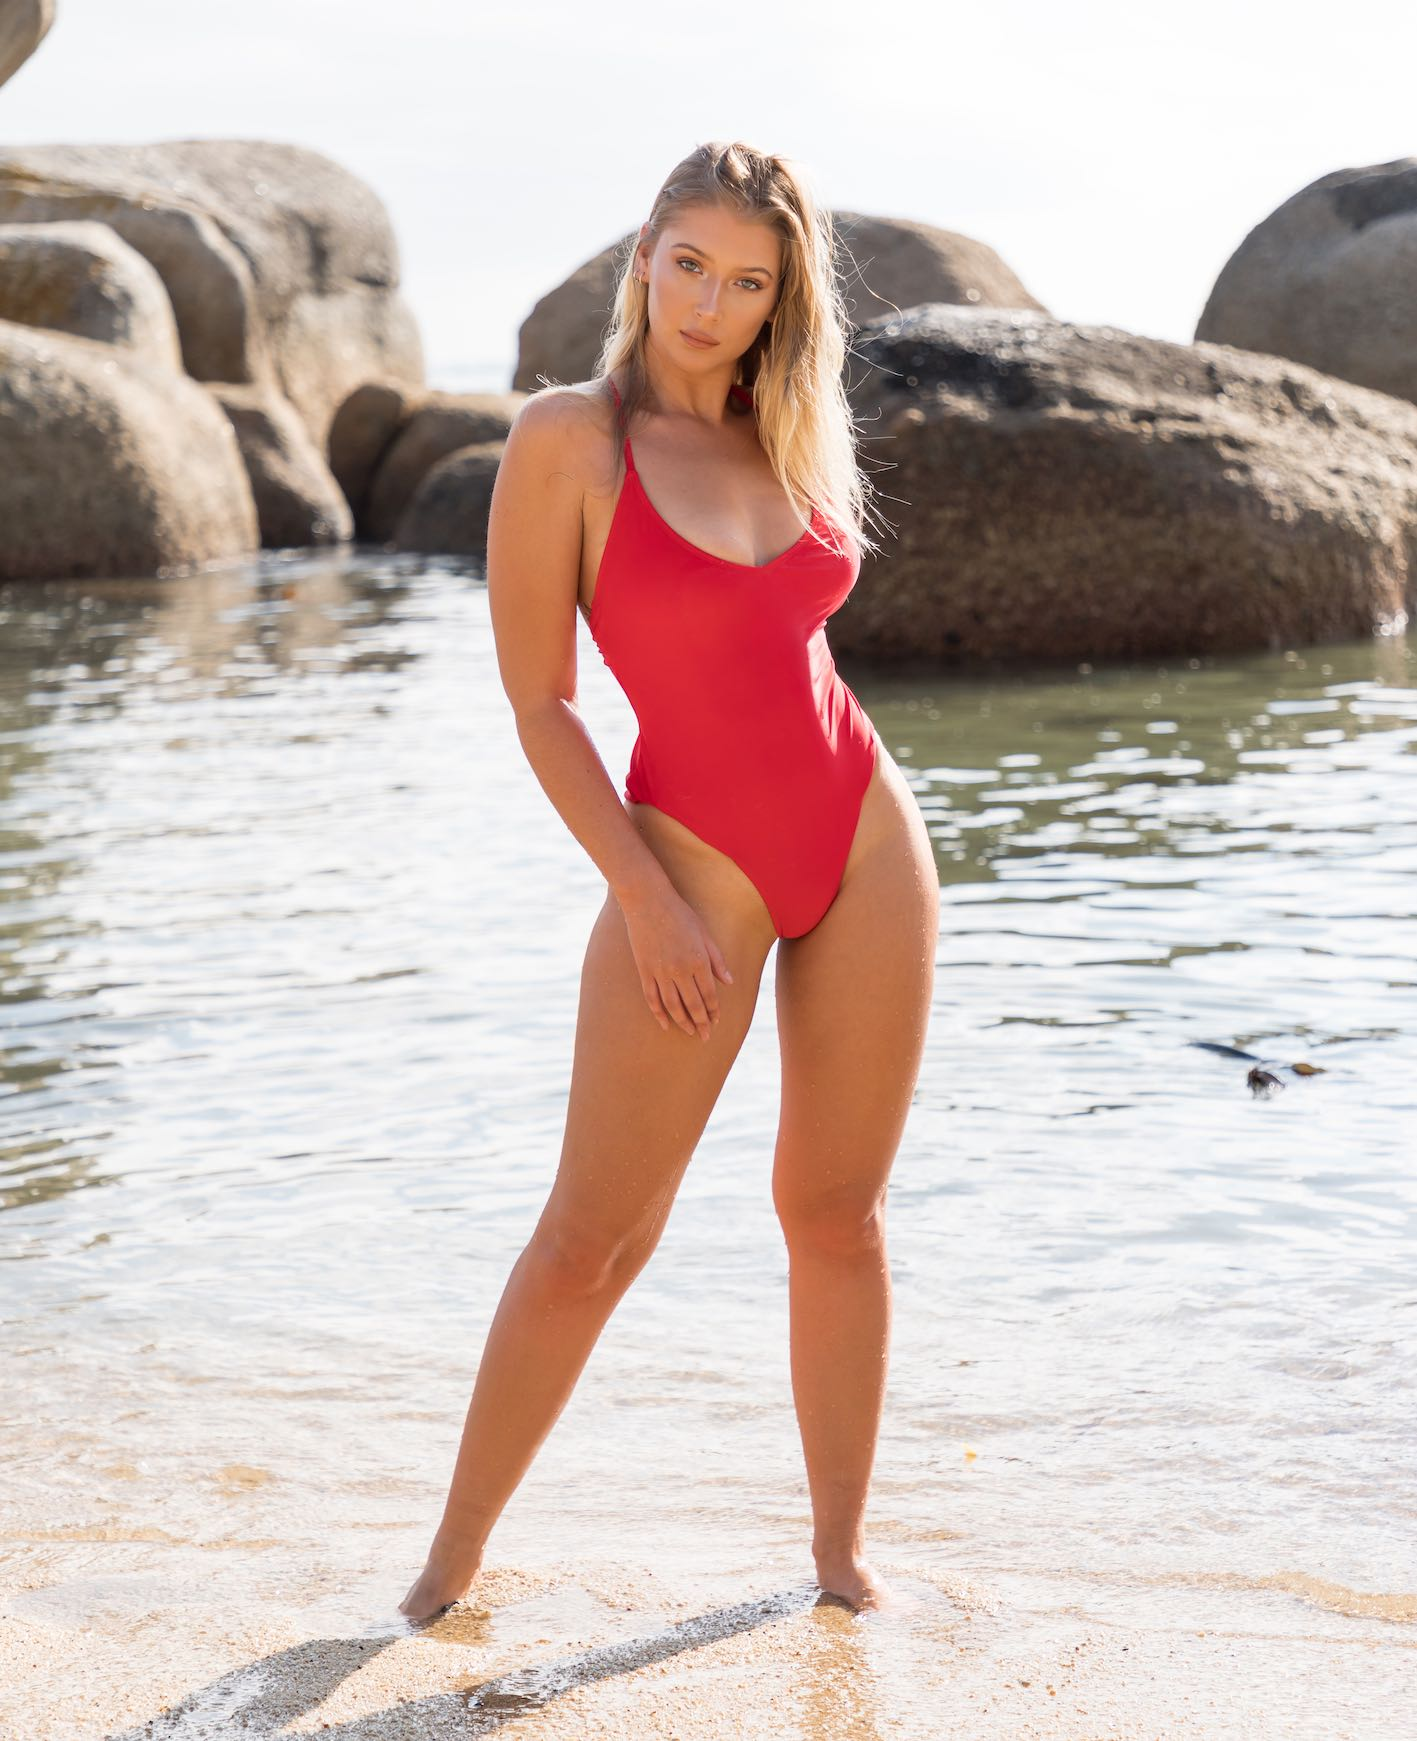 Our South African Babes feature with Amber Brits